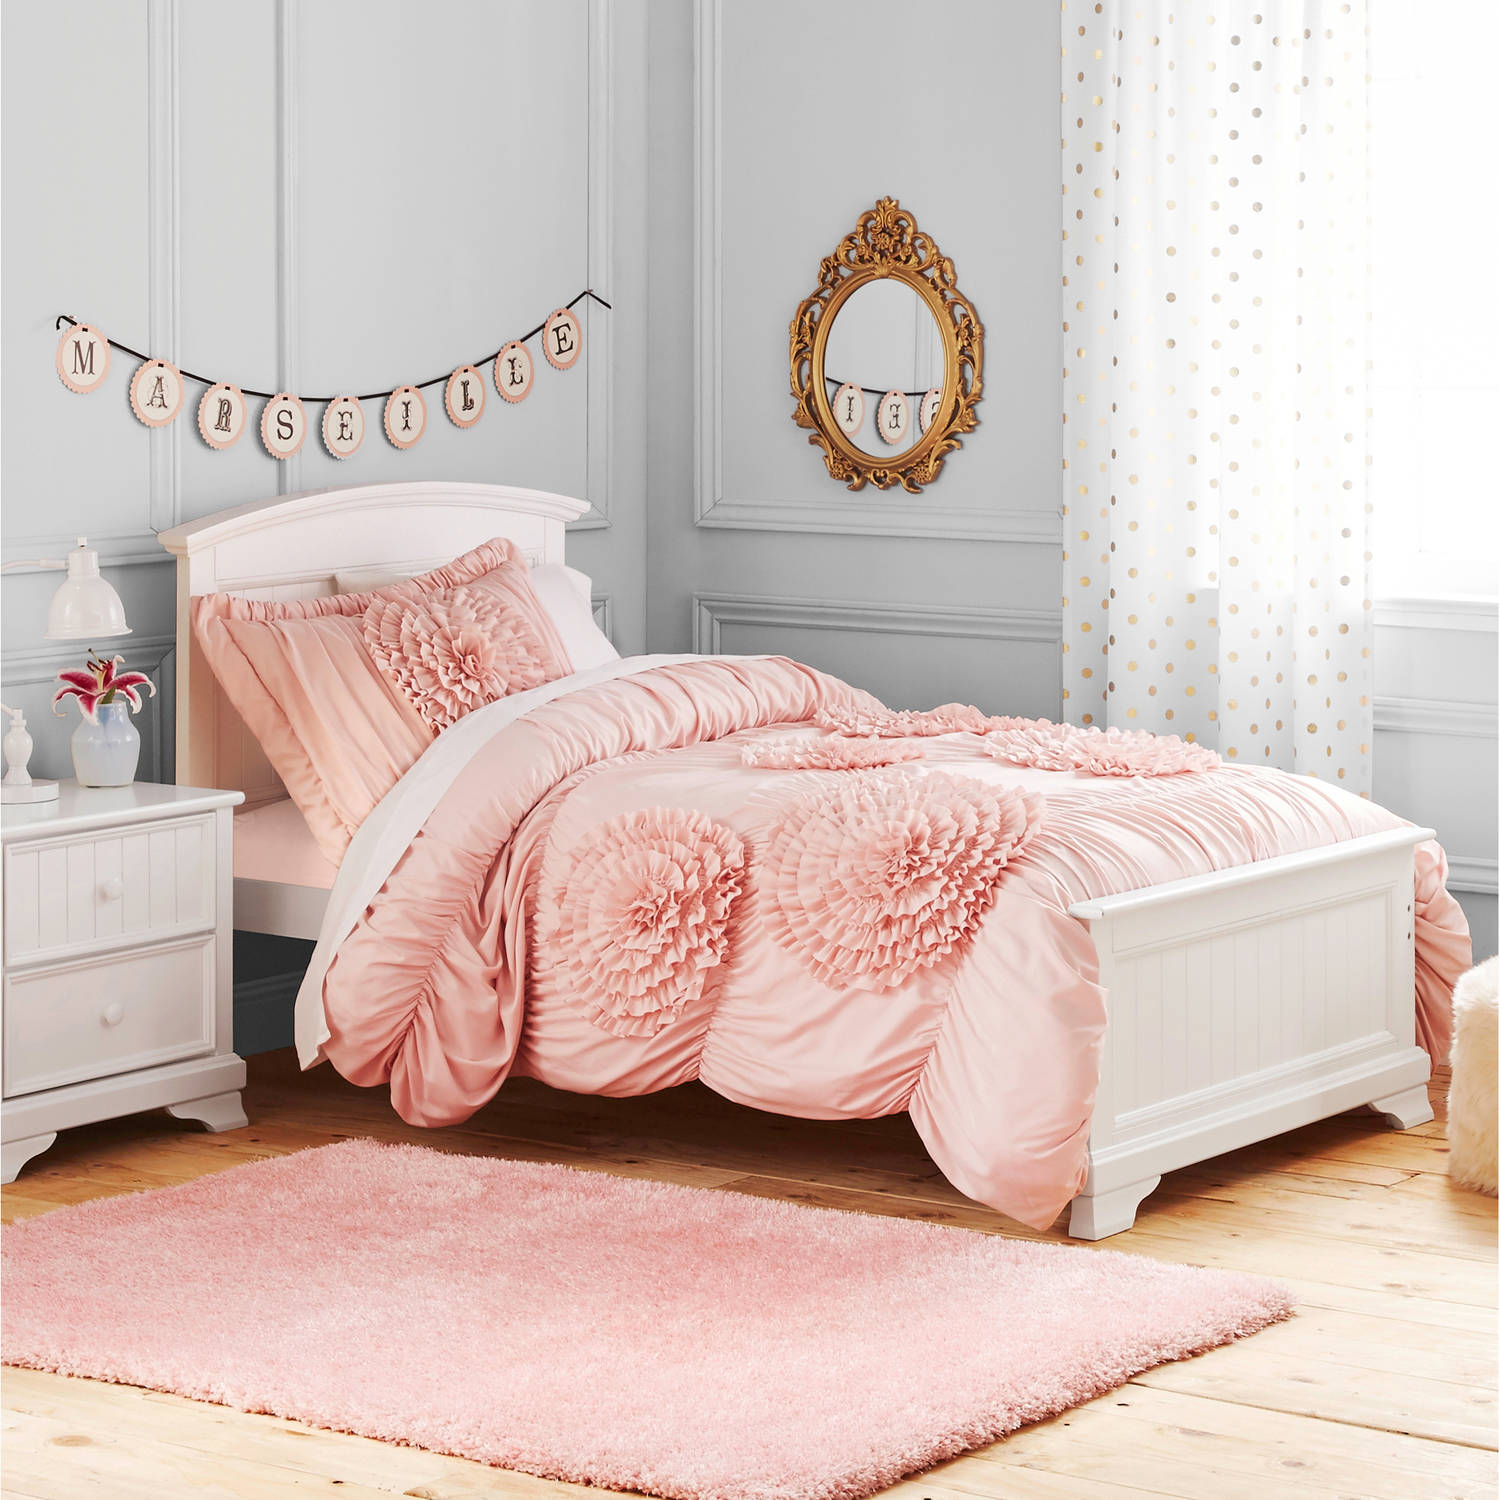 Better Homes and Gardens Ruffled Flowers Bedding Comforter Set